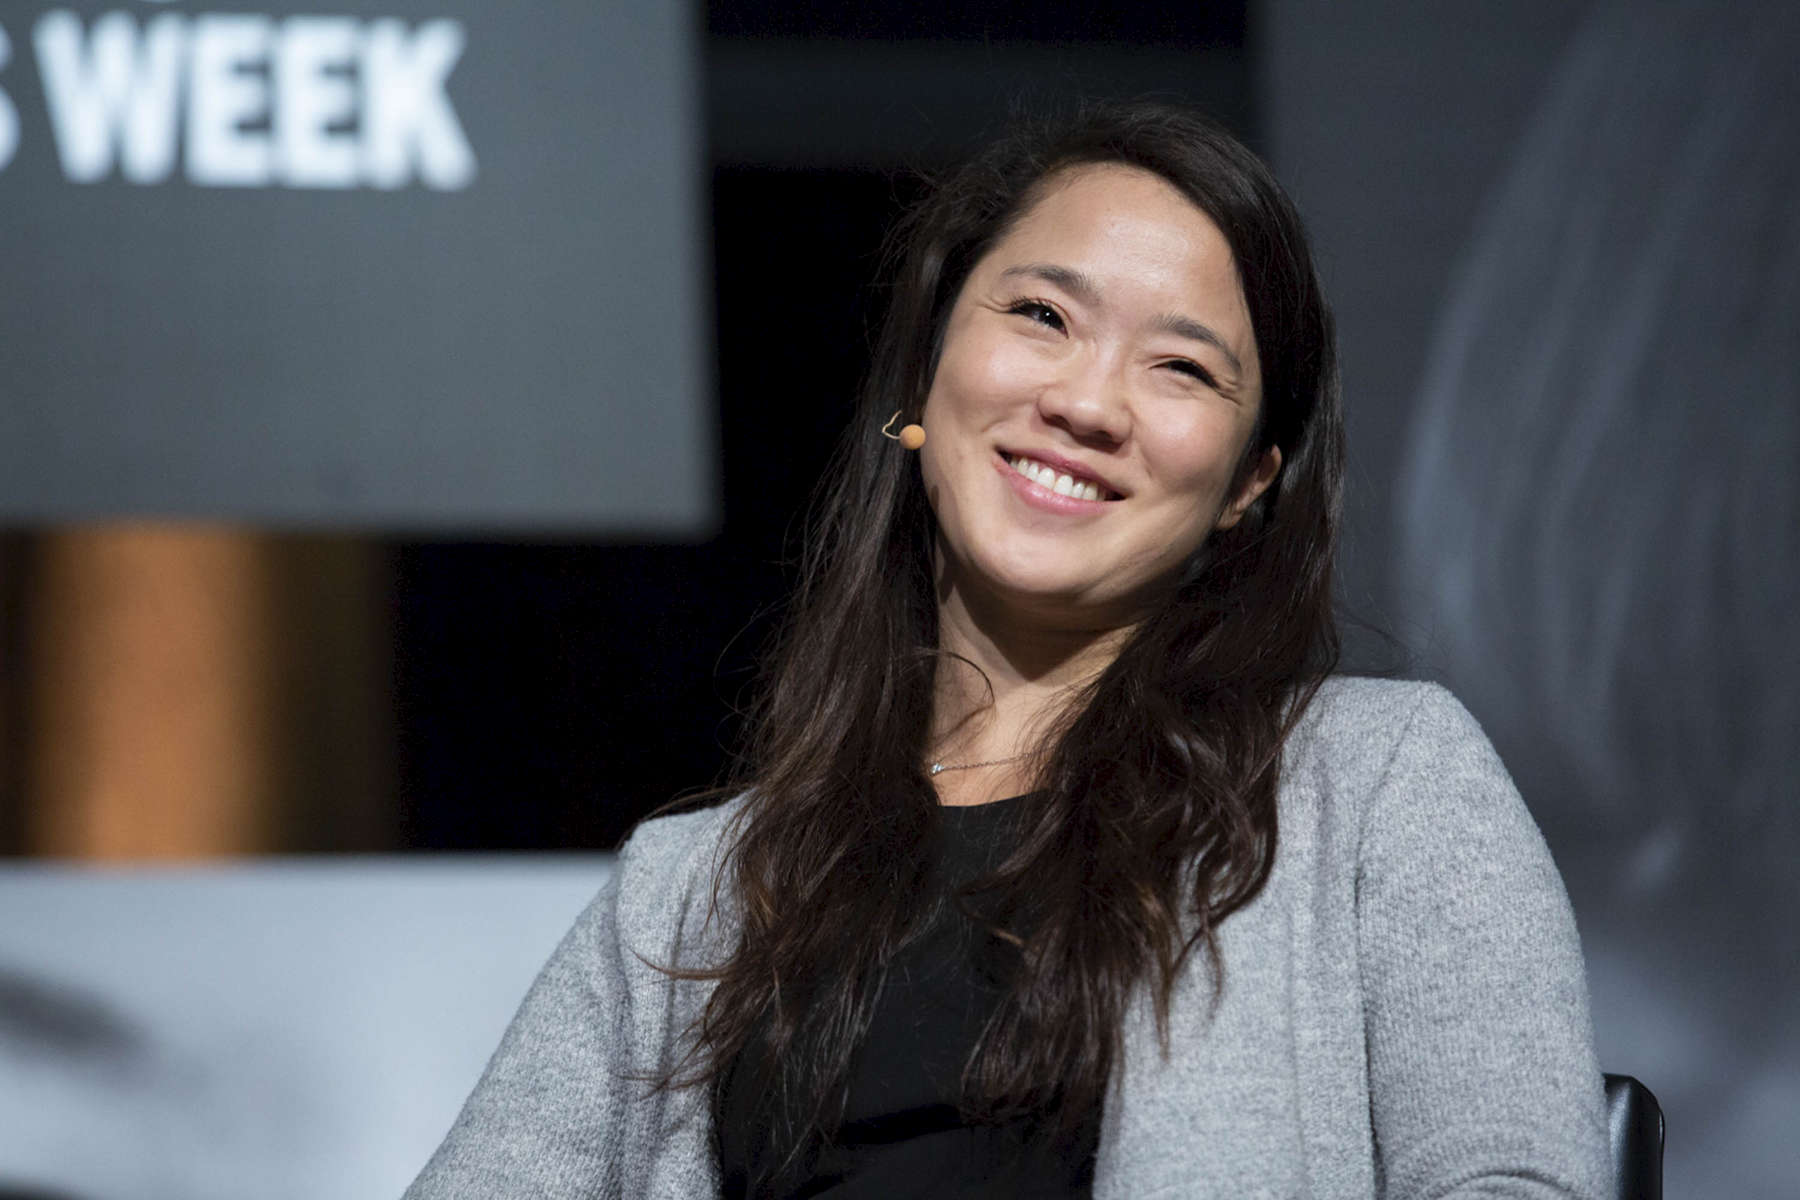 """CHICAGO, IL - OCTOBER 17: Heejae Lim, BHSI Fellow; Founder & CEO of TalkingPoints, speaks at Chicago Ideas Week talk """"Changing the World Through Entrepreneurship"""" presented by Horizon Pharma at the Edlis Neeson Theater. (Photo by Beth Rooney/Chicago Ideas Week)"""